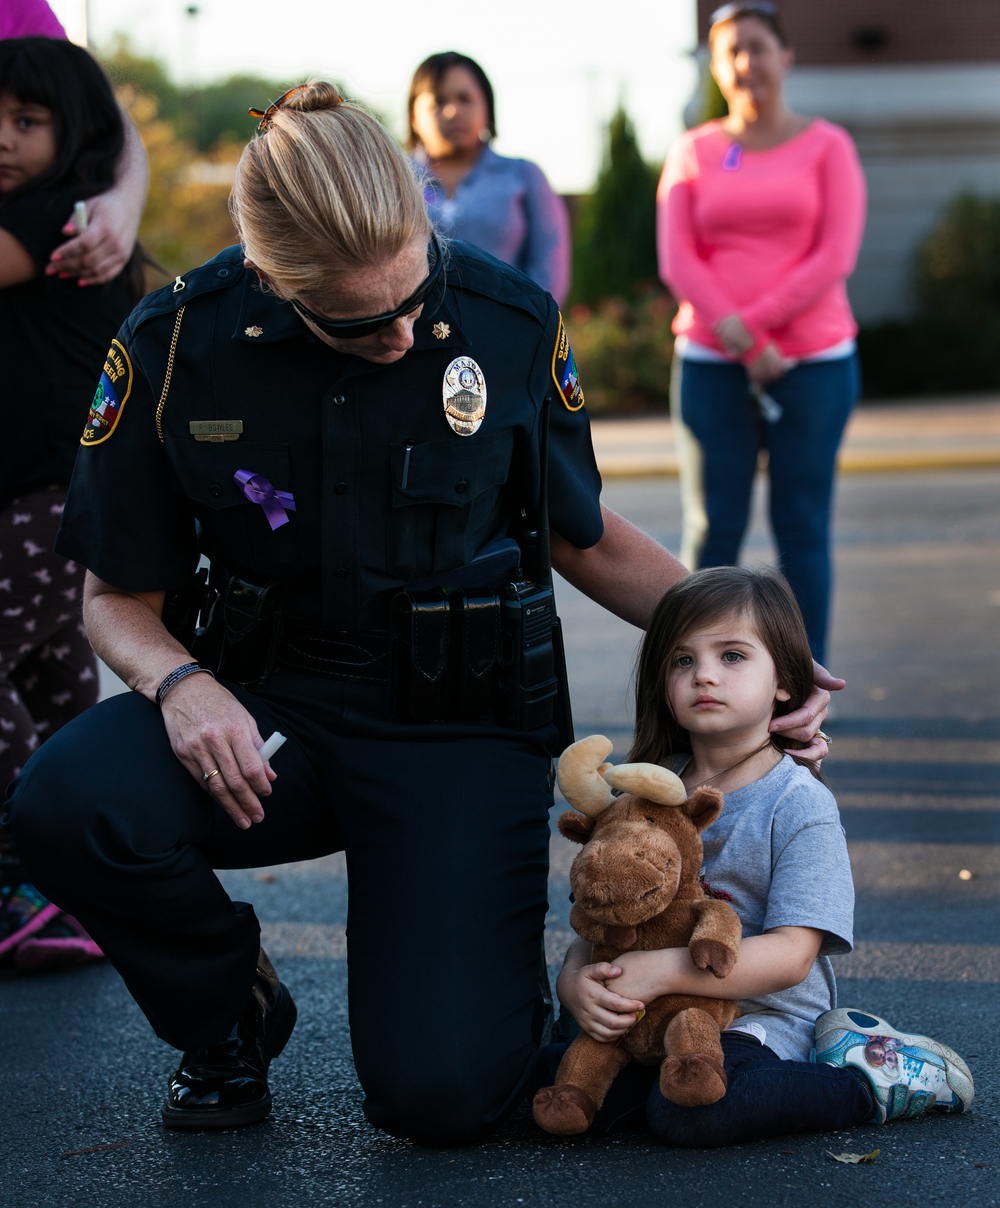 Women and men, young and old, gathered in the parking lot in front of the Justice Center in Bowling Green, Kentucky, to attend a candlelight vigil for awareness of domestic violence. This event was a part of the Domestic Violence Awareness Month that occurred on Thursday, October 15, 2015. One of the participants, Officer Penny Bowles, looked after, Allyson Trowbridge, 4, the daughter of an abused woman who attended the event.